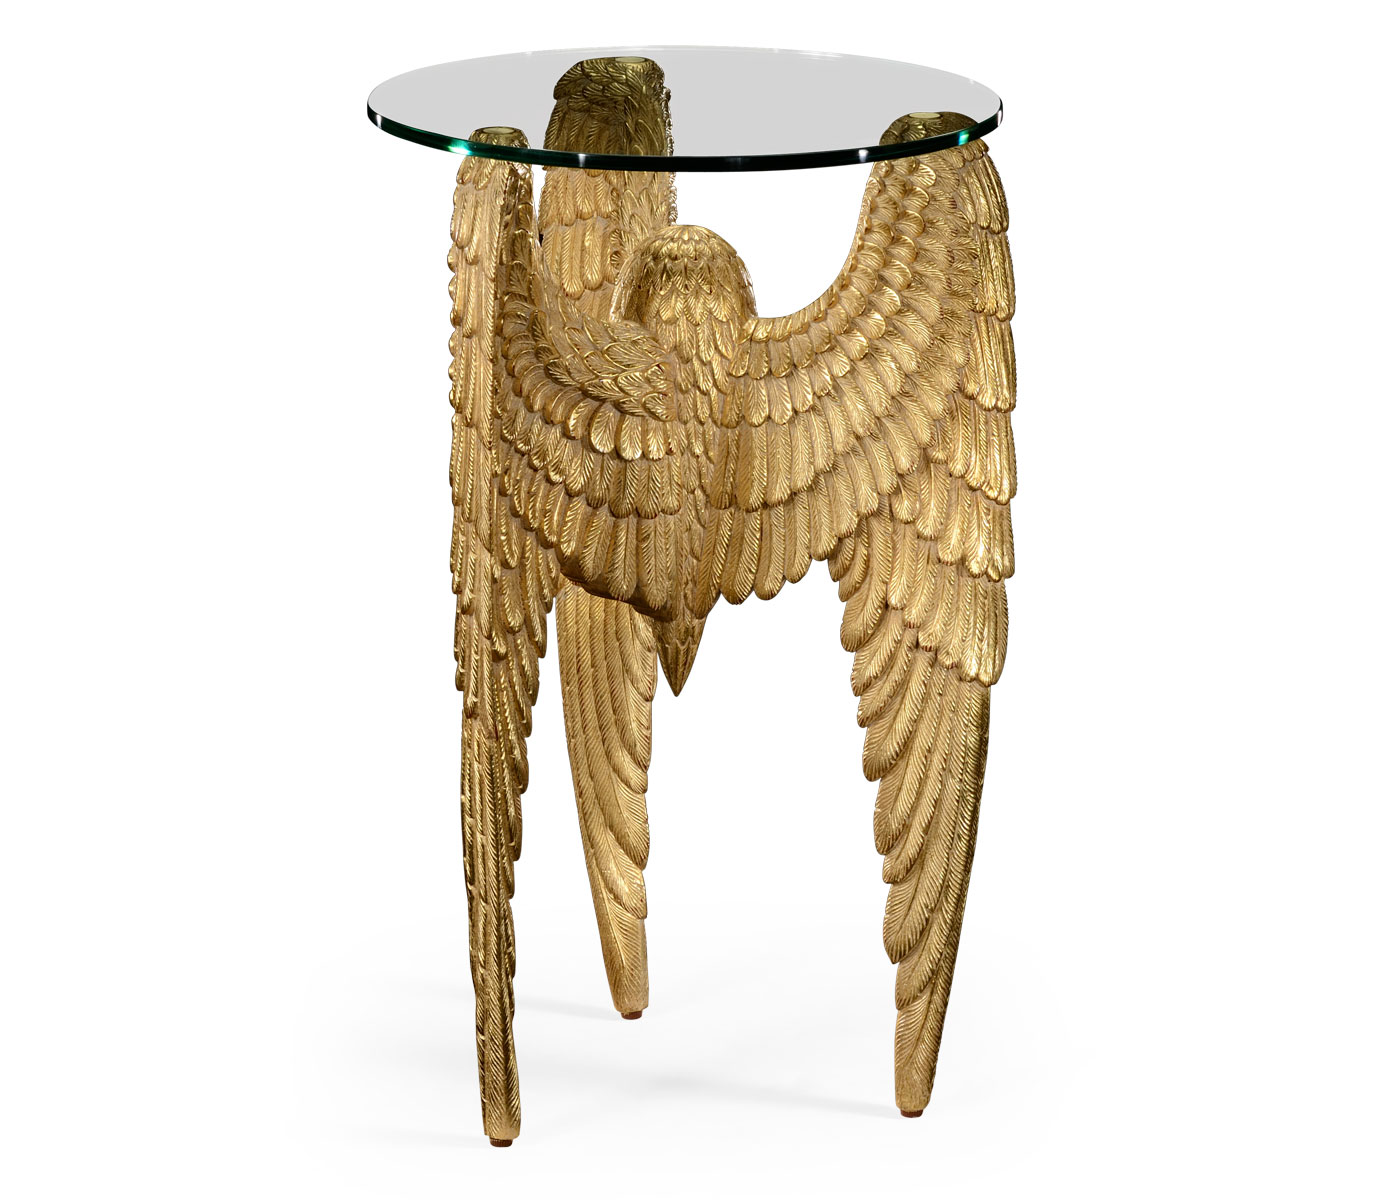 angels wing side table winged designer tables accent designs limited production design tall gold gilded partner wall mirrors chairs available hospitality residential interior